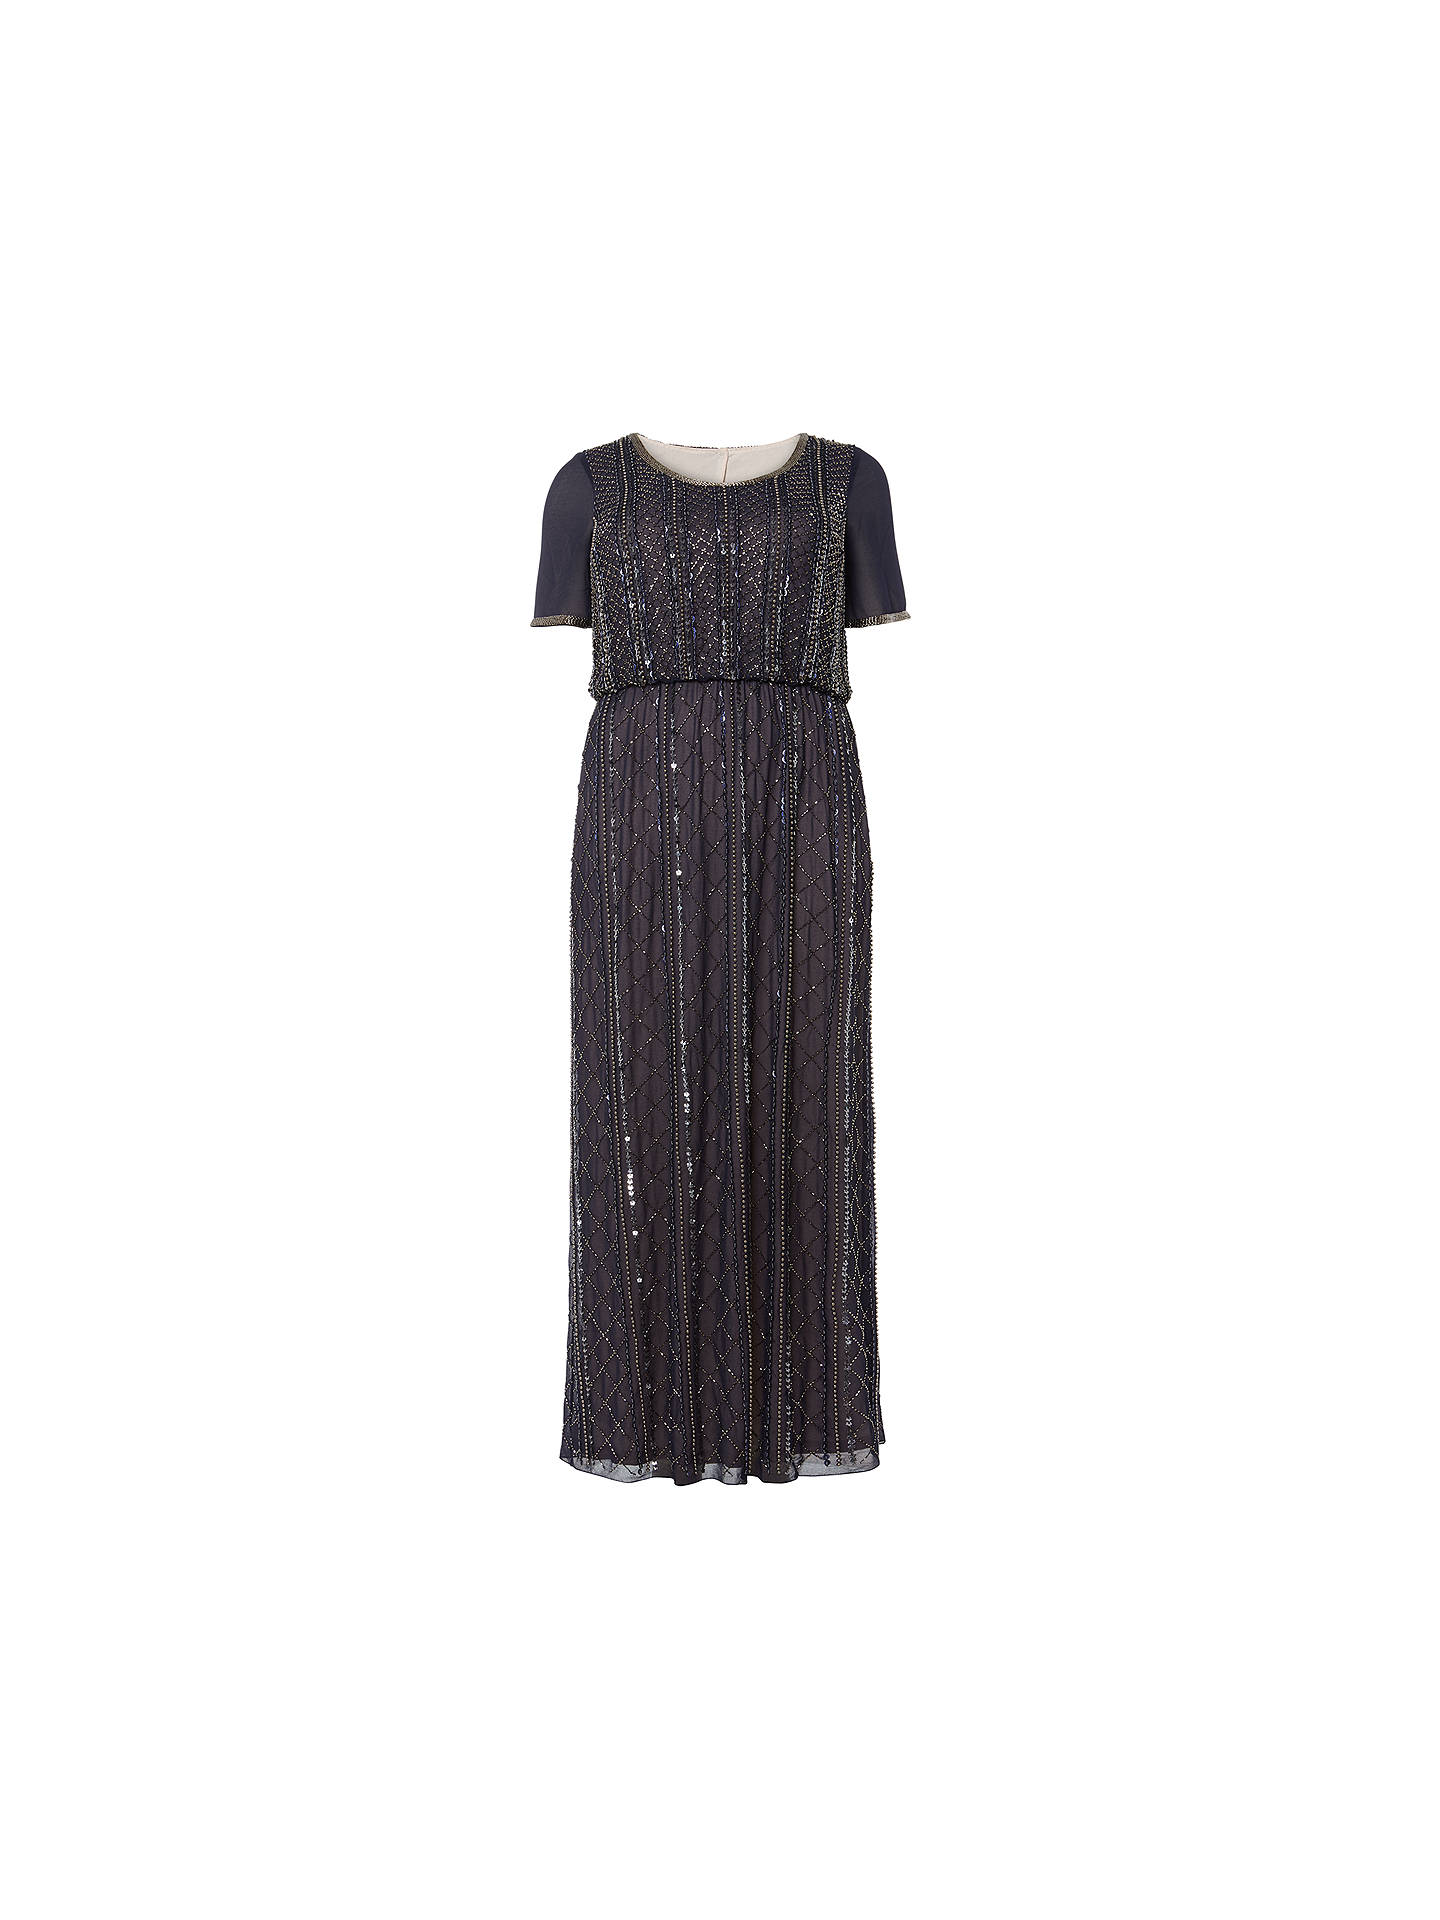 BuyStudio 8 Aria Dress, Navy, 16 Online at johnlewis.com